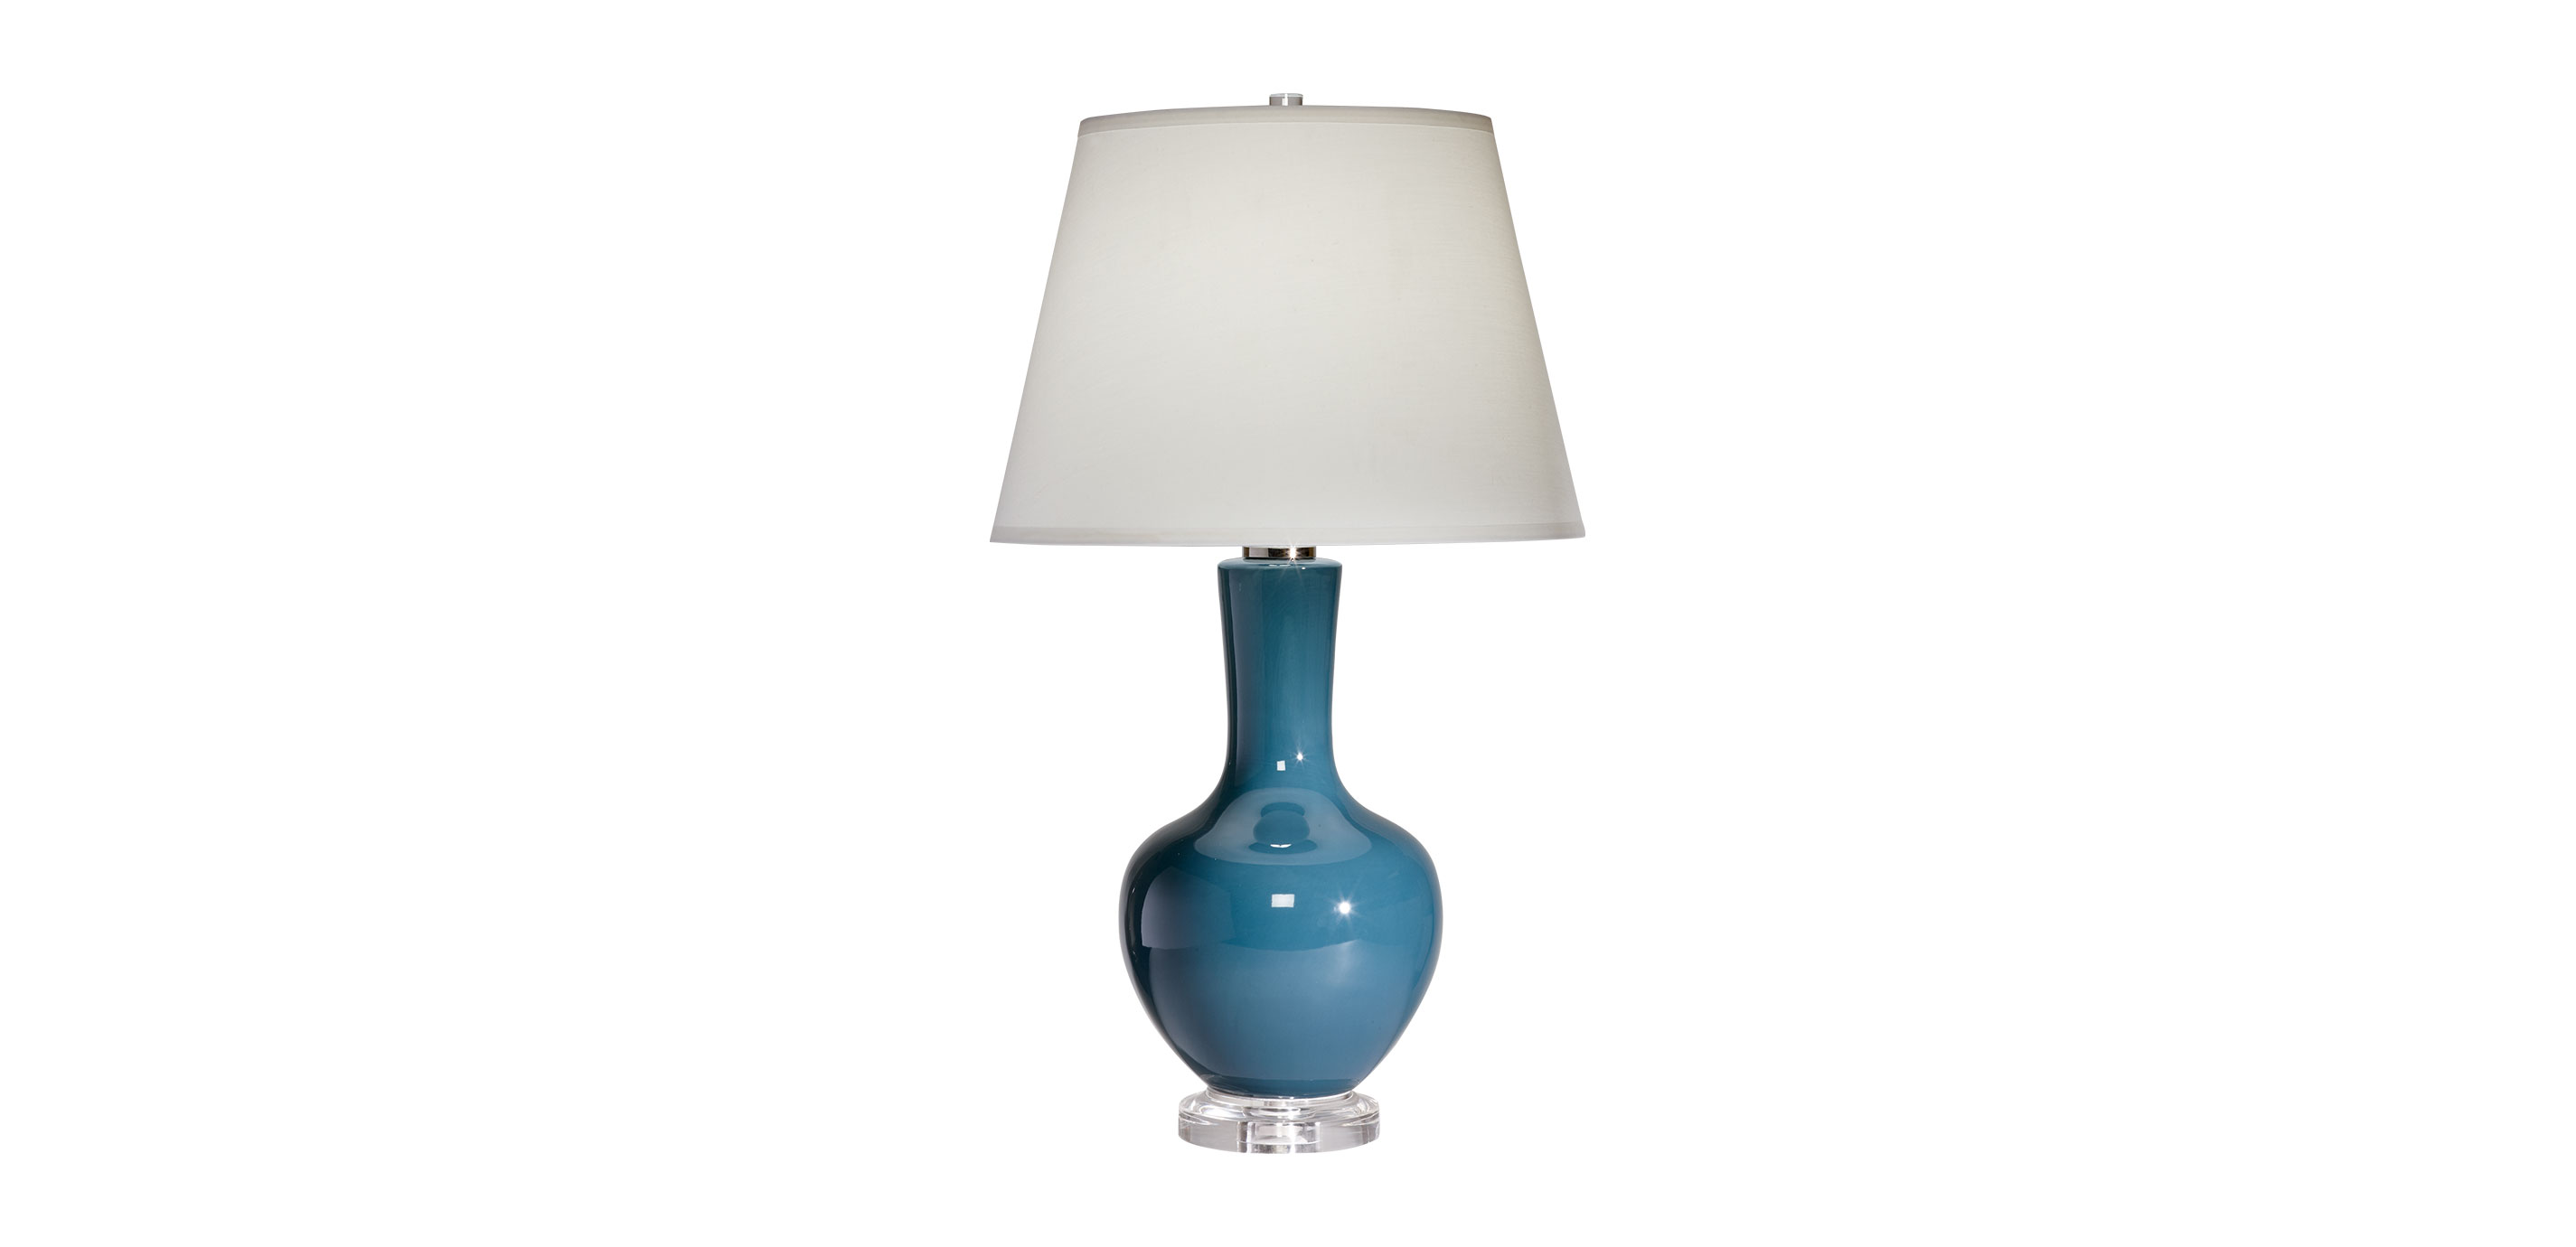 Lia table lamp table lamps ethan allen images lia table lamp largegray aloadofball Images